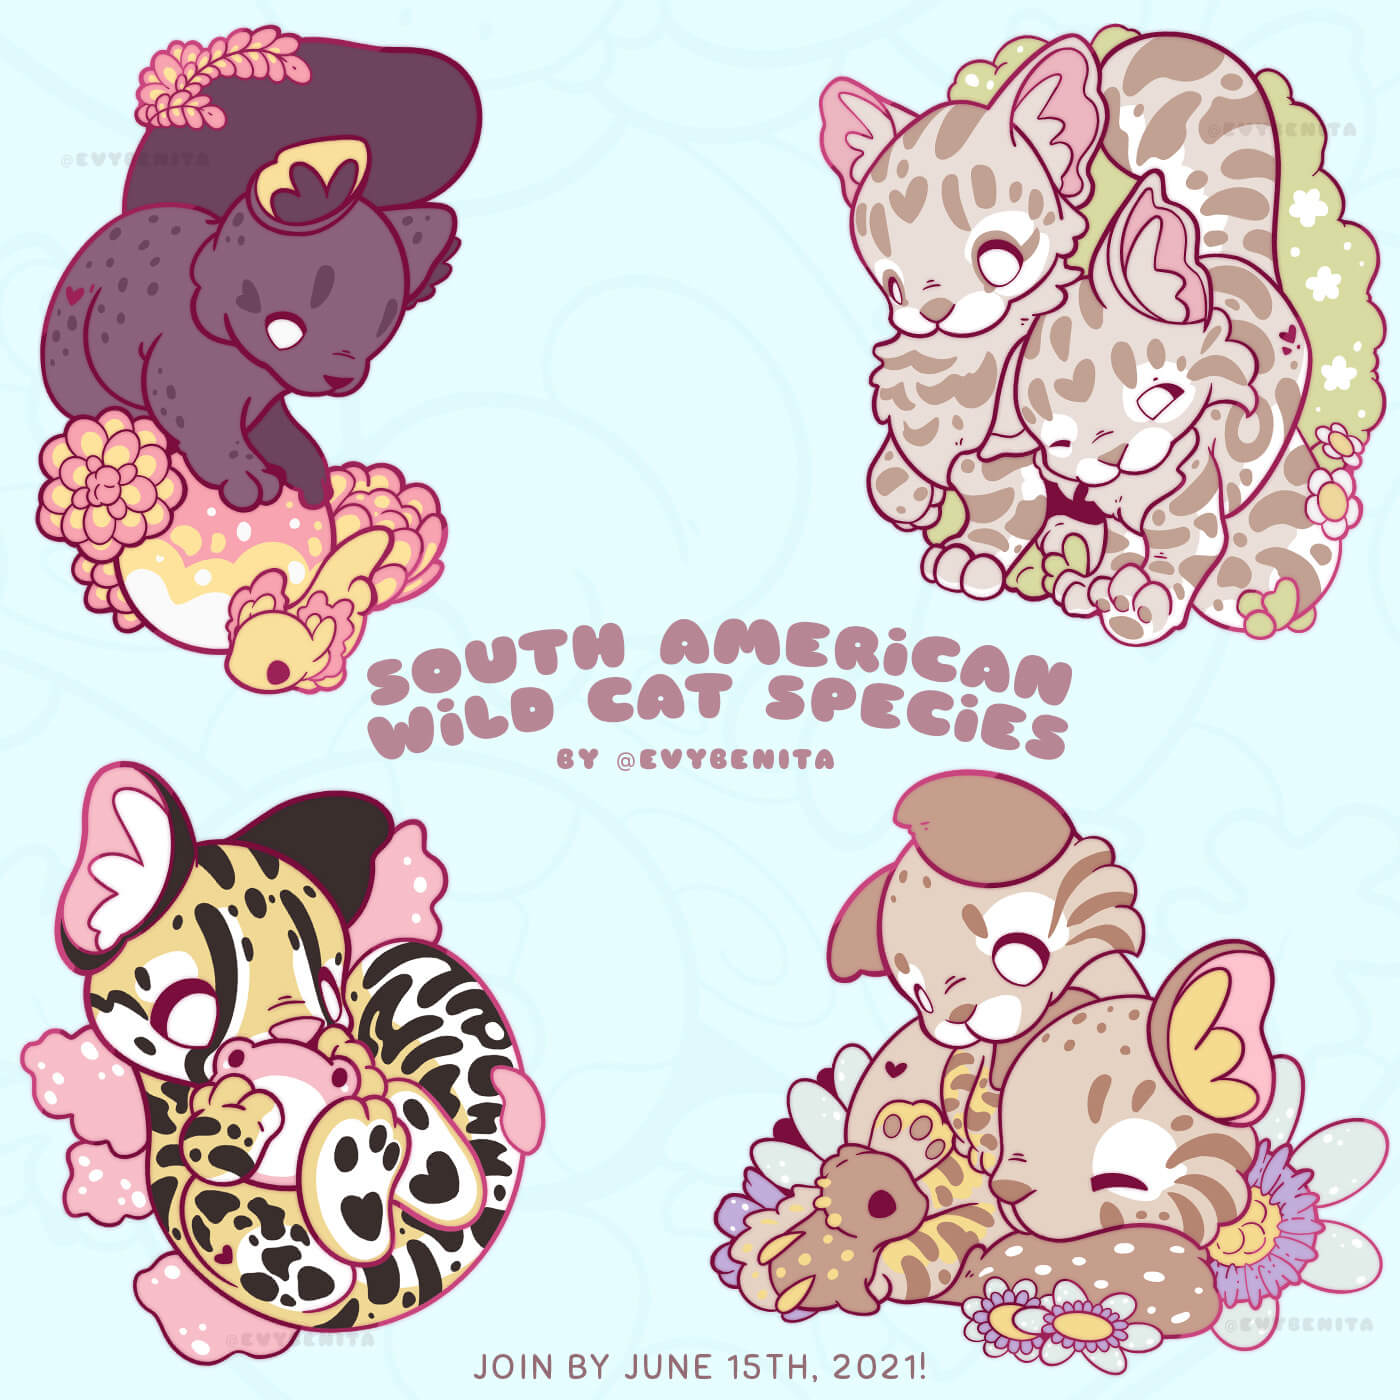 A set of four adorable wild cat enamel pins by Evy Benita. Each pin will be made with hard enamel and rose gold plating. The set features a jaguarundi, two Andean mountain cats, one oncilla (Northern tiger cat), and two pampas cats. The pampas cats are visited by a curious porcupine, and the jaguarundi is looking at an axolotl who's casually swimming by.